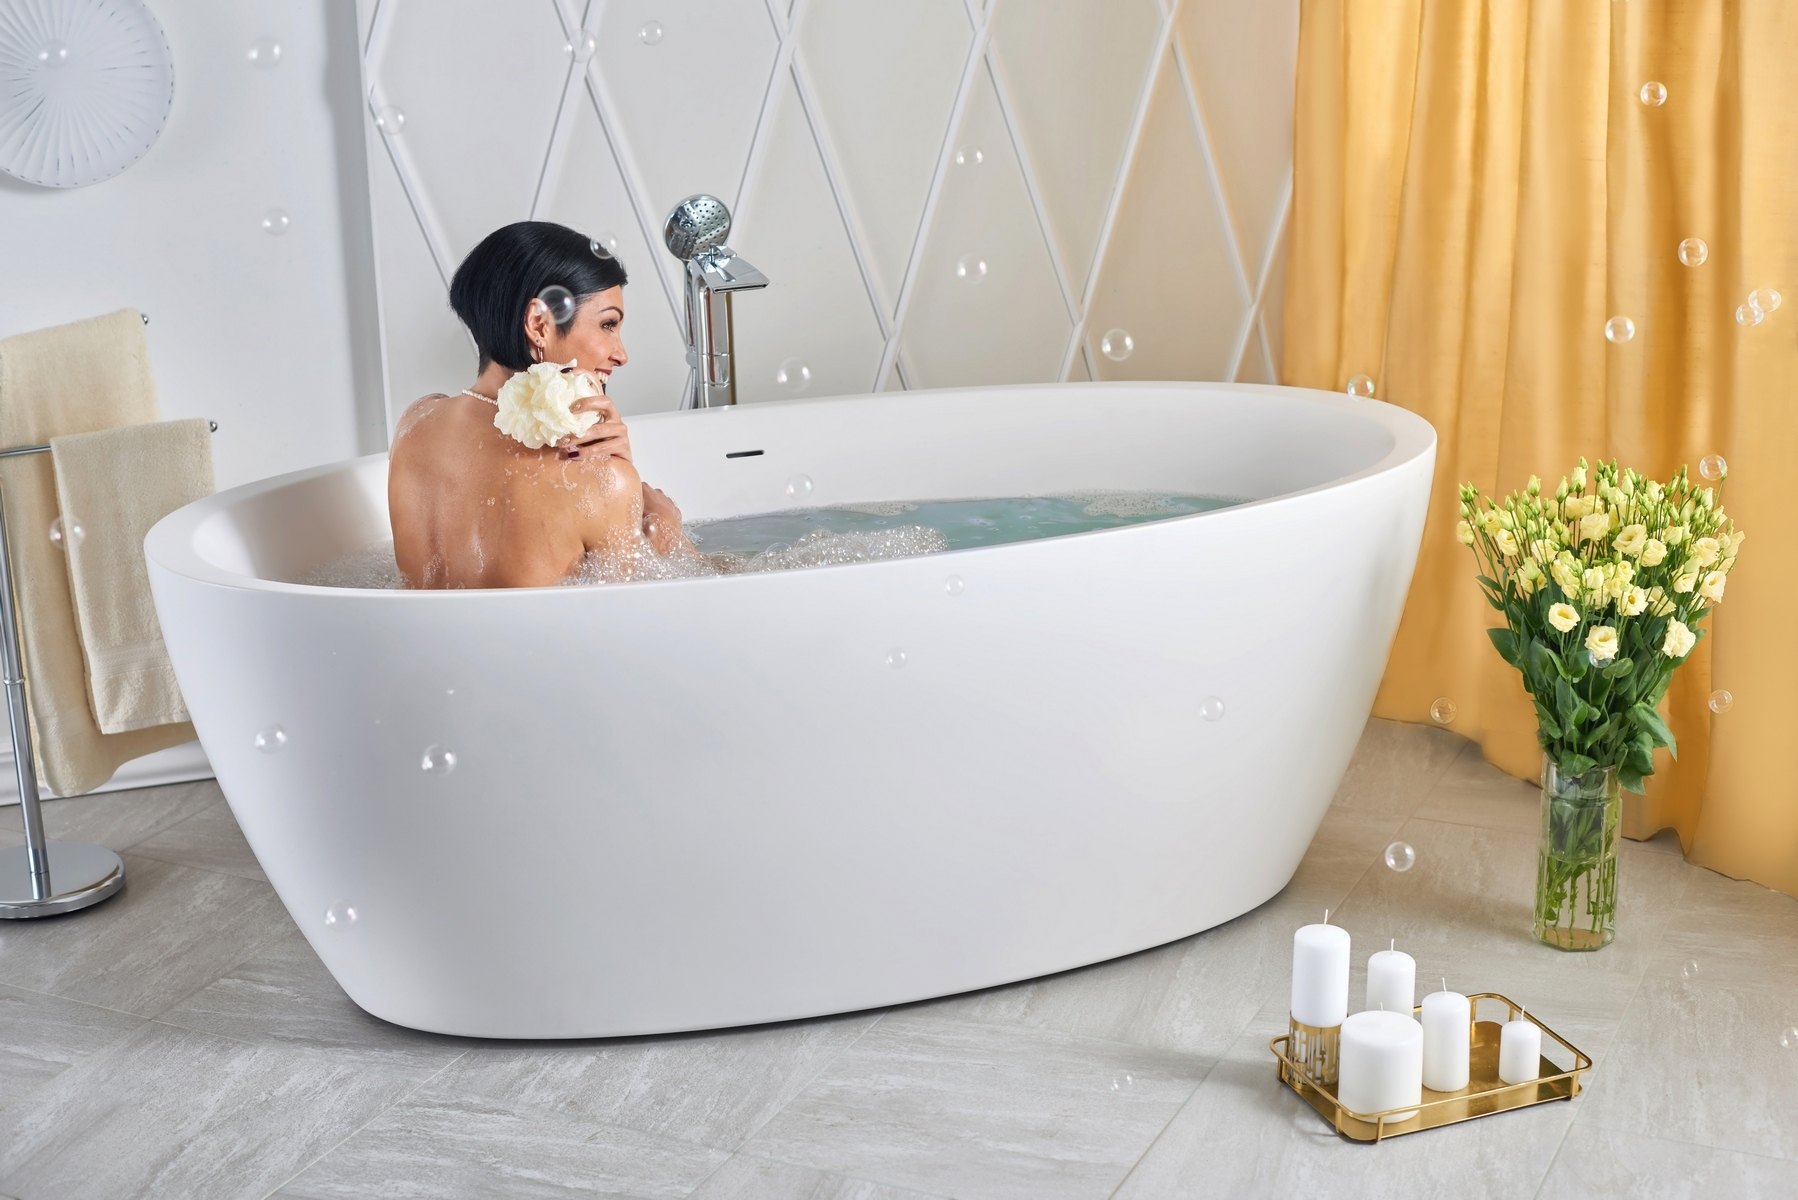 Aquatica Sensuality Wht Freestanding Solid Surface Bathtub web(9)